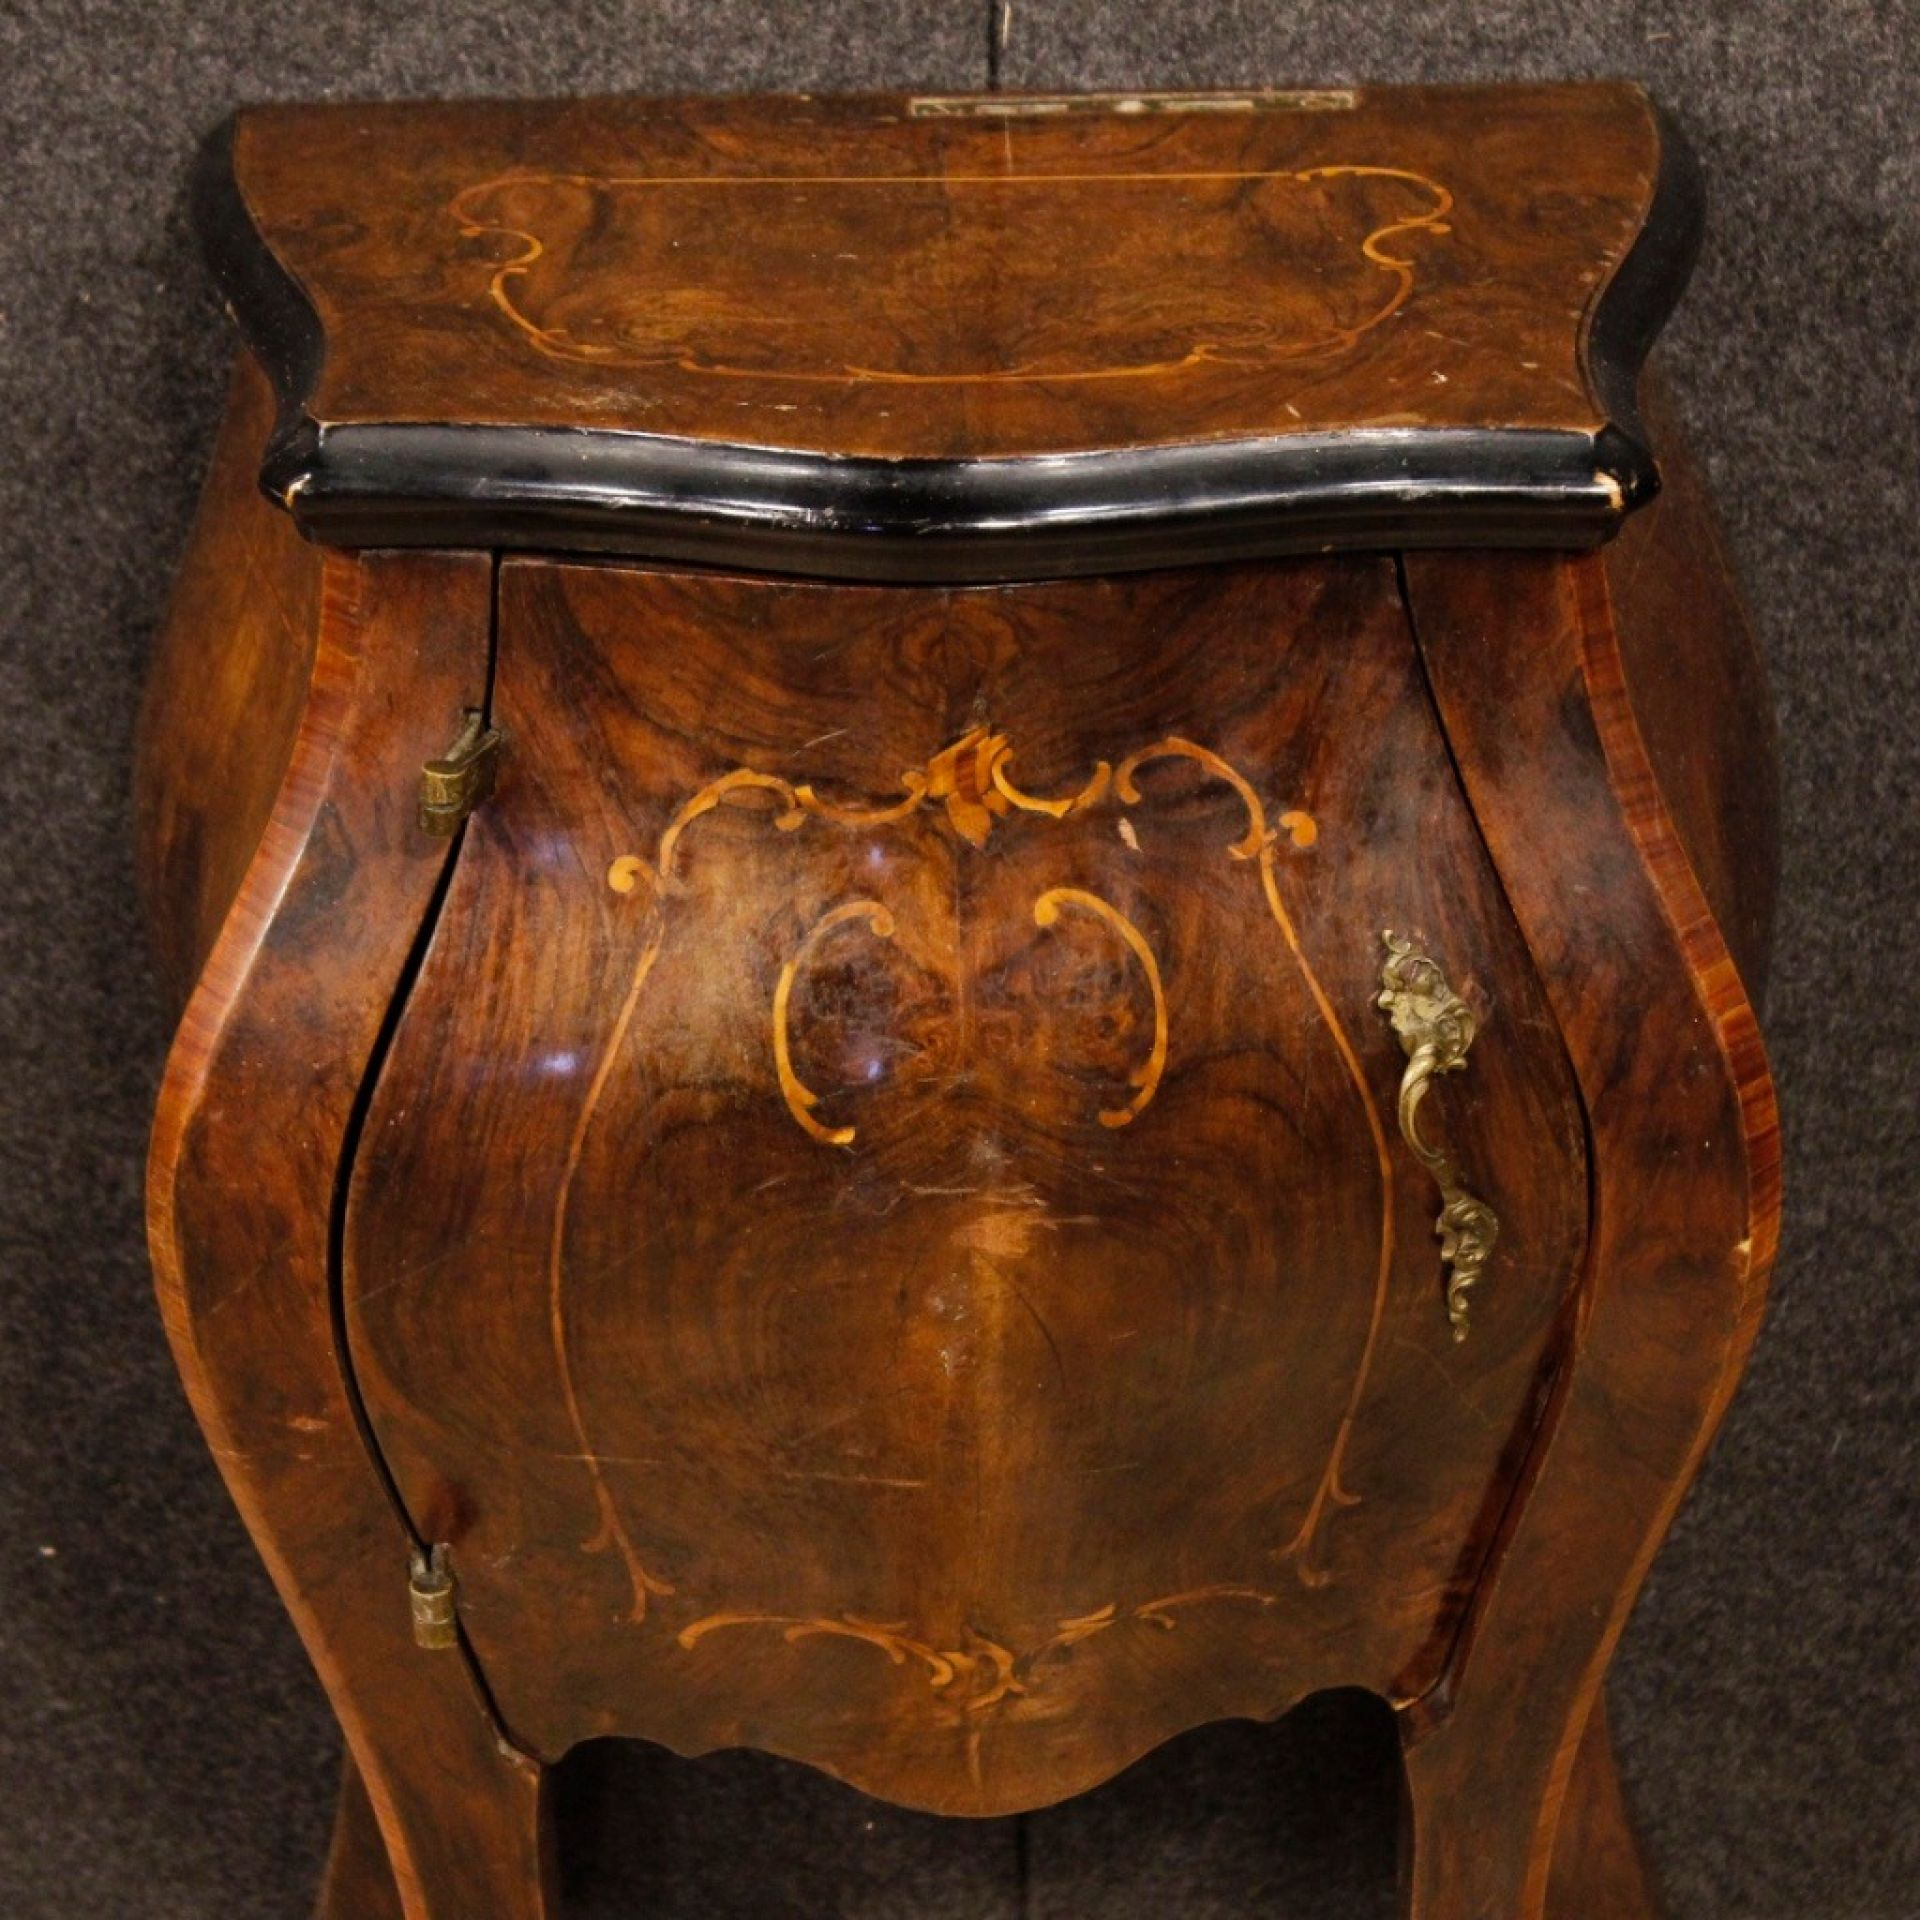 20th Century Pair of Inlaid Wood Italian Bedside Tables, 1950